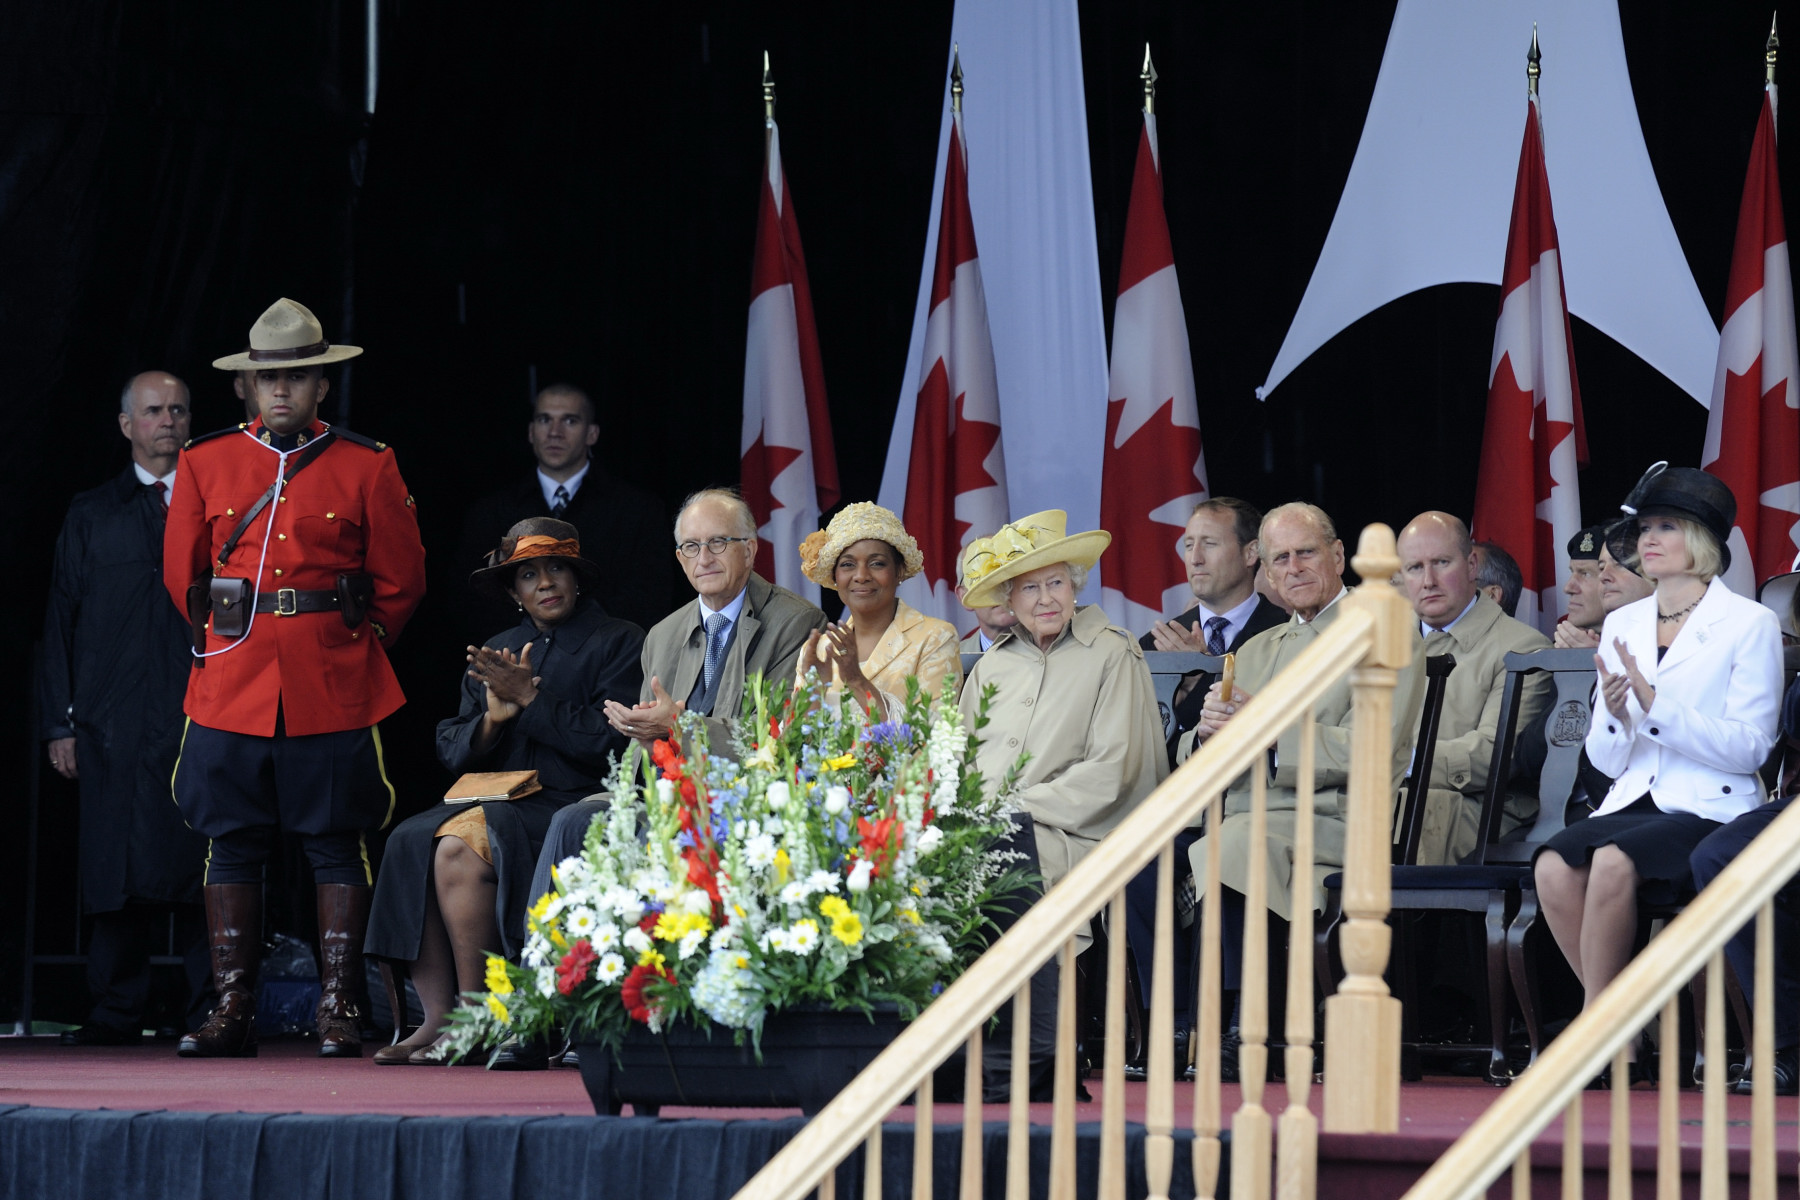 The official welcoming ceremony took place at Garrison Grounds in Halifax.